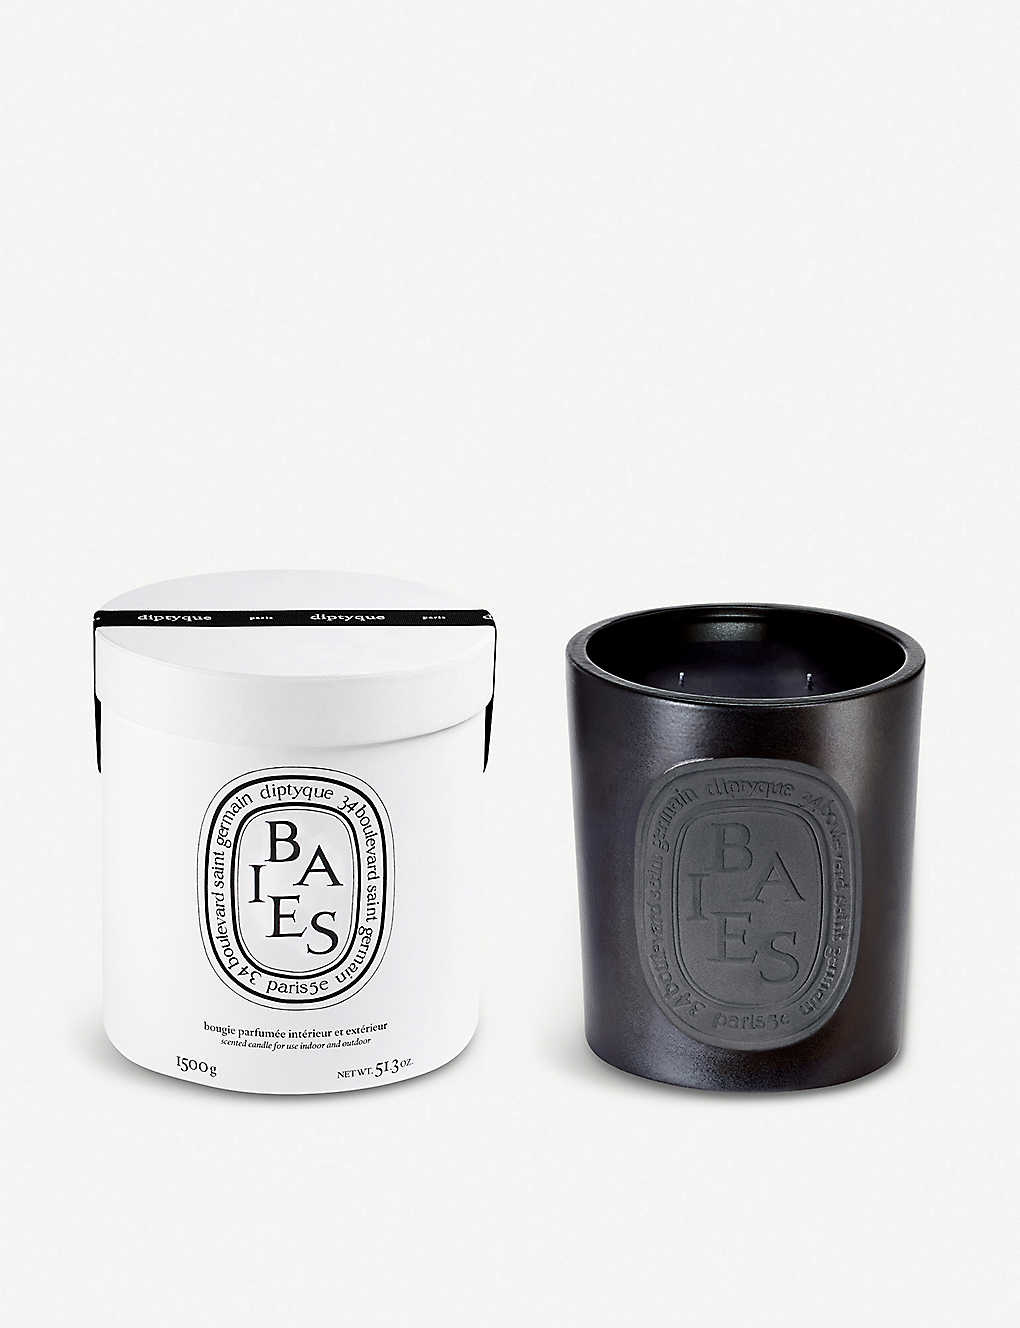 DIPTYQUE: Baies Noir scented candle 1.5kg